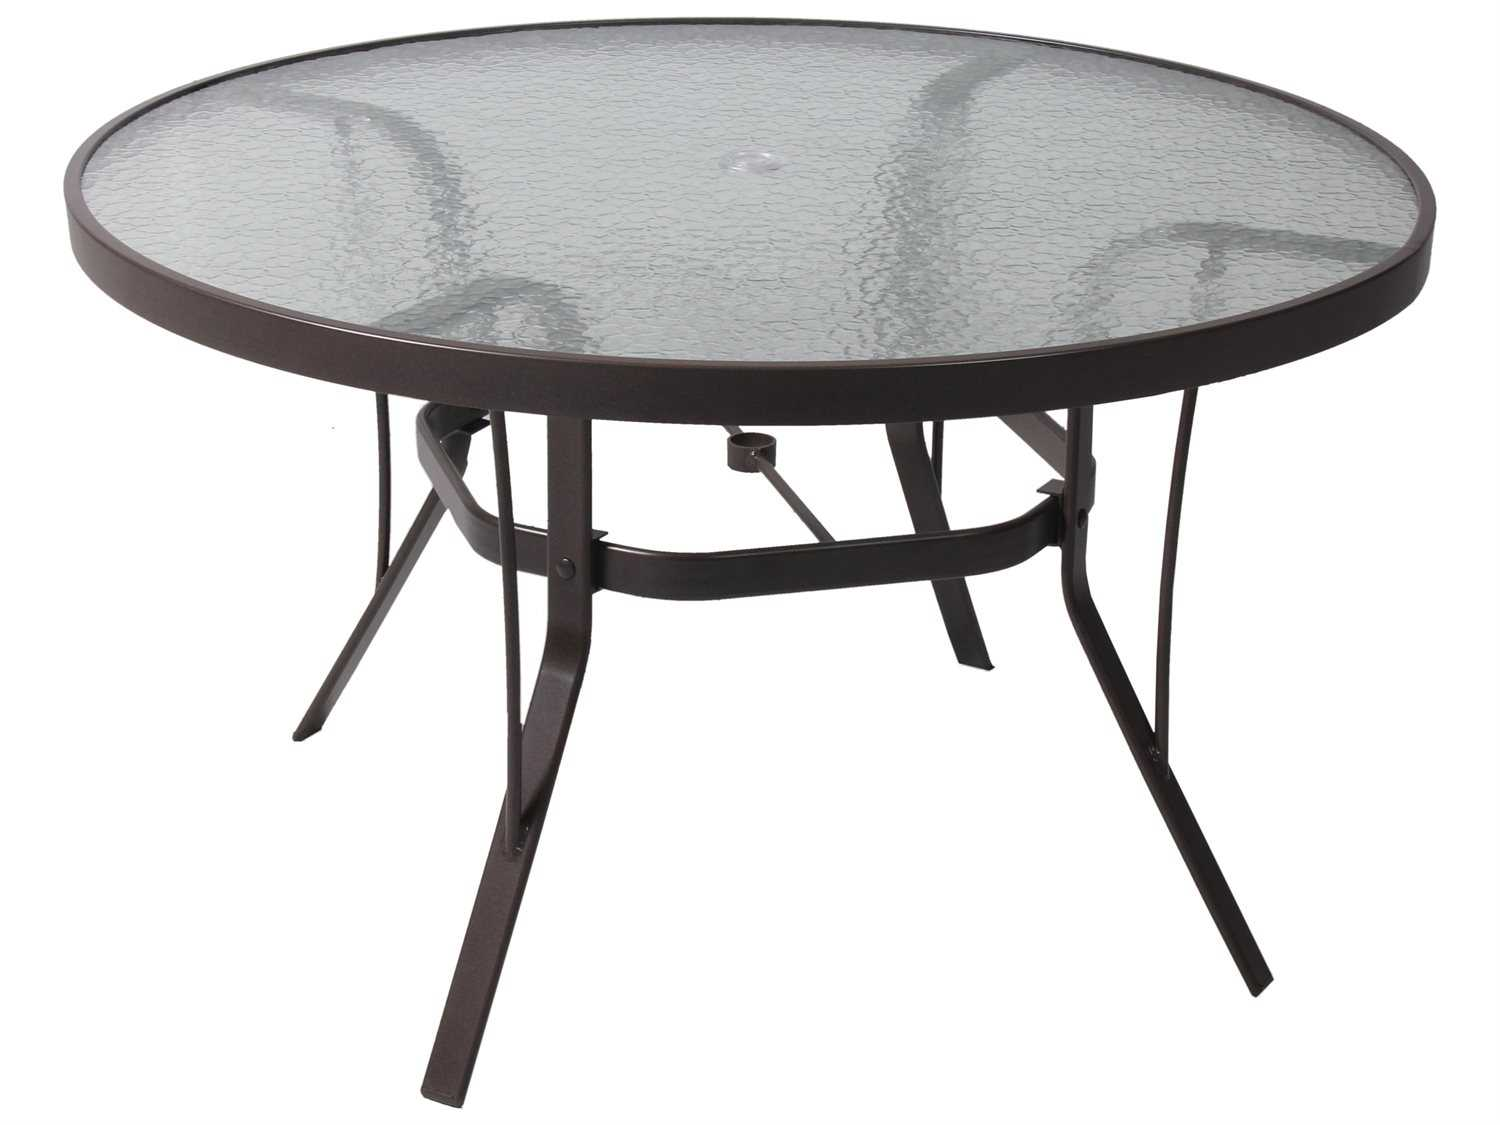 Suncoast cast aluminum 36 39 39 round glass top dining table for Round glass dining table